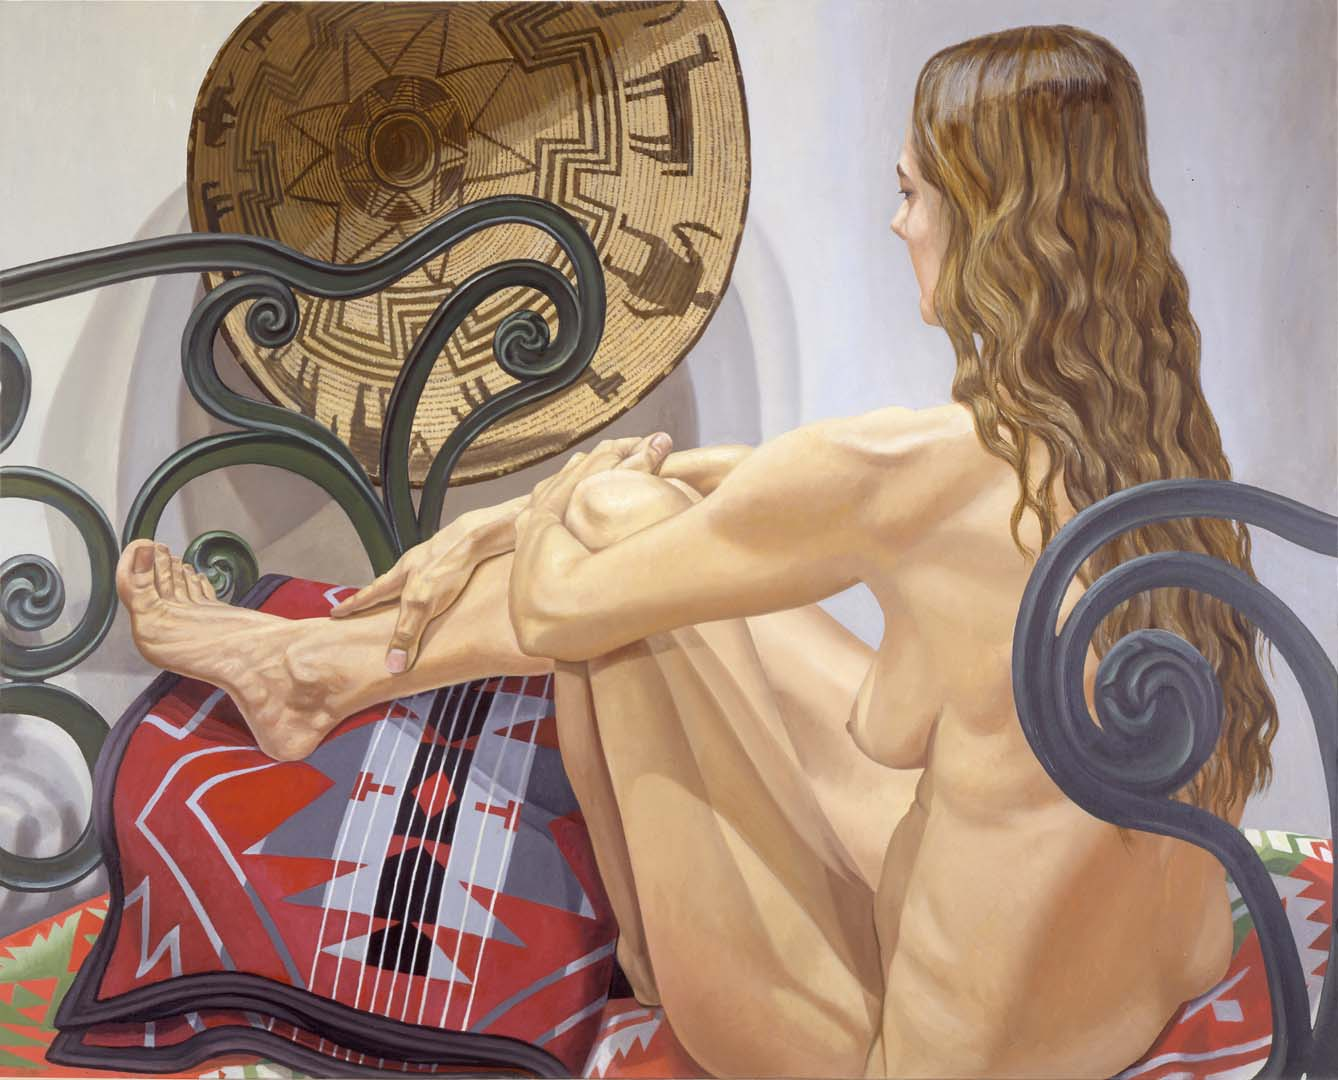 "1996 Nude with Navajo Basket and Cast Iron Bed Oil on Canvas 48"" x 60"""